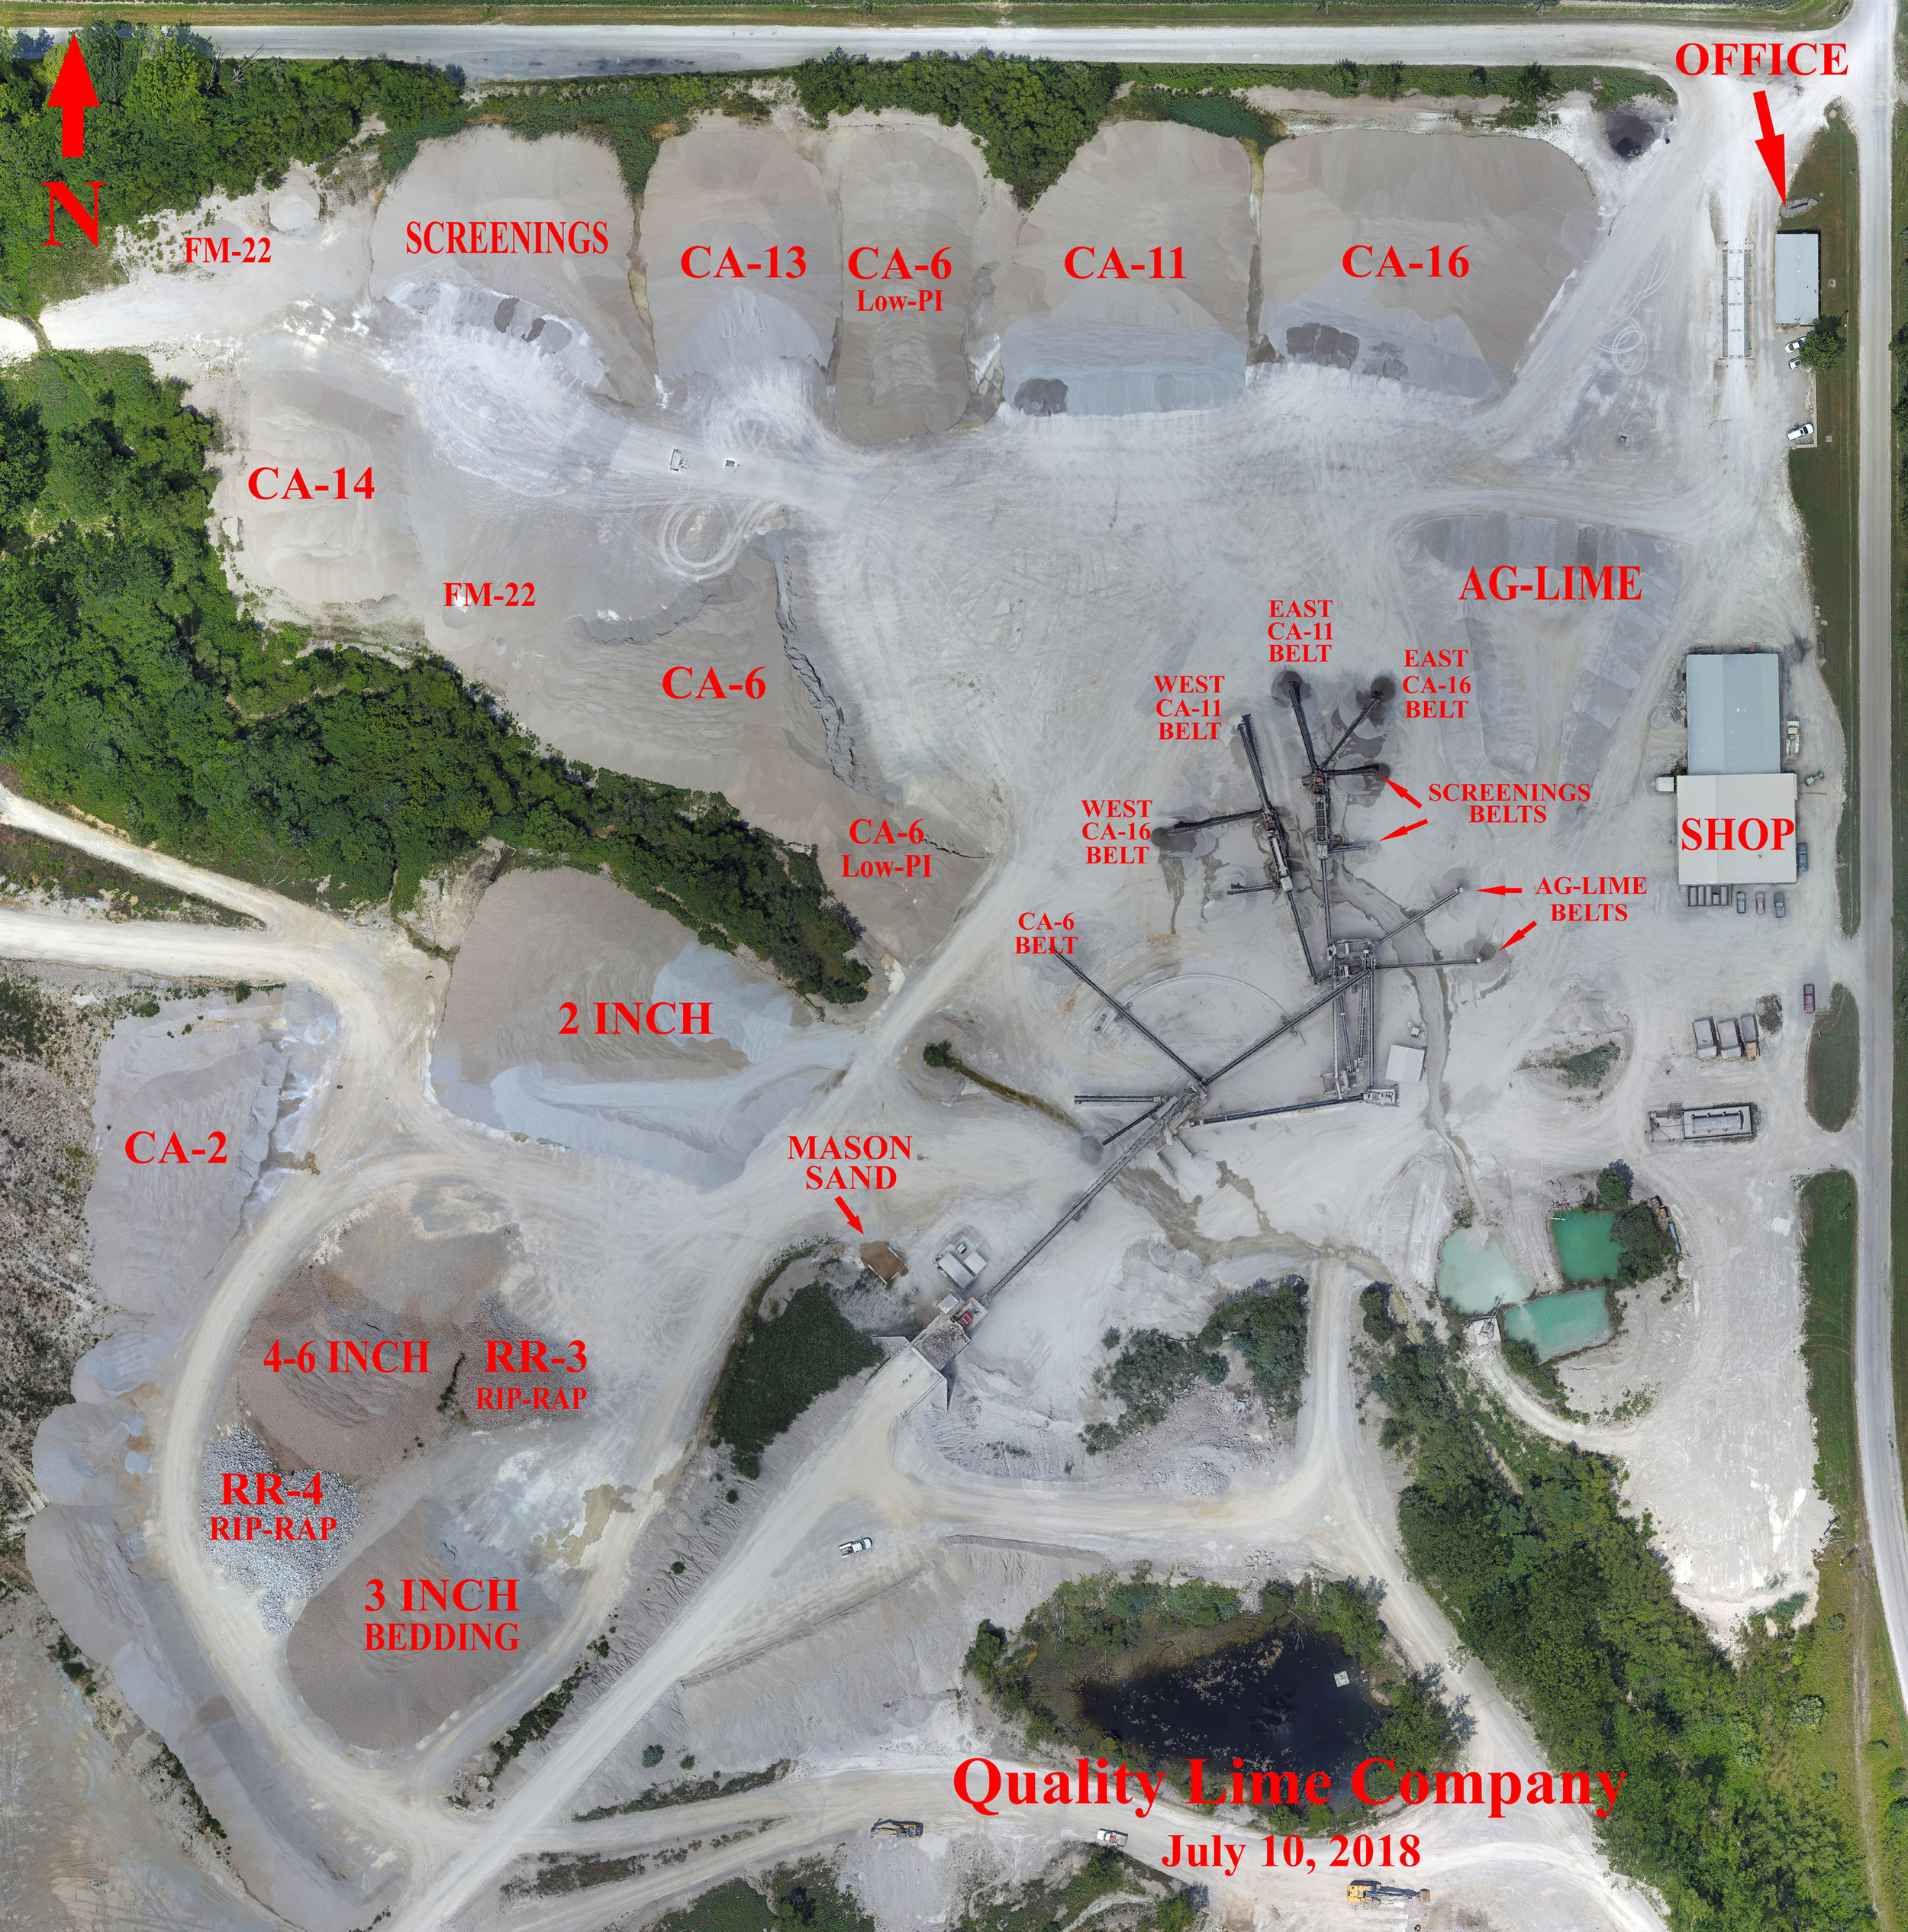 Overview of Stockpile Locations